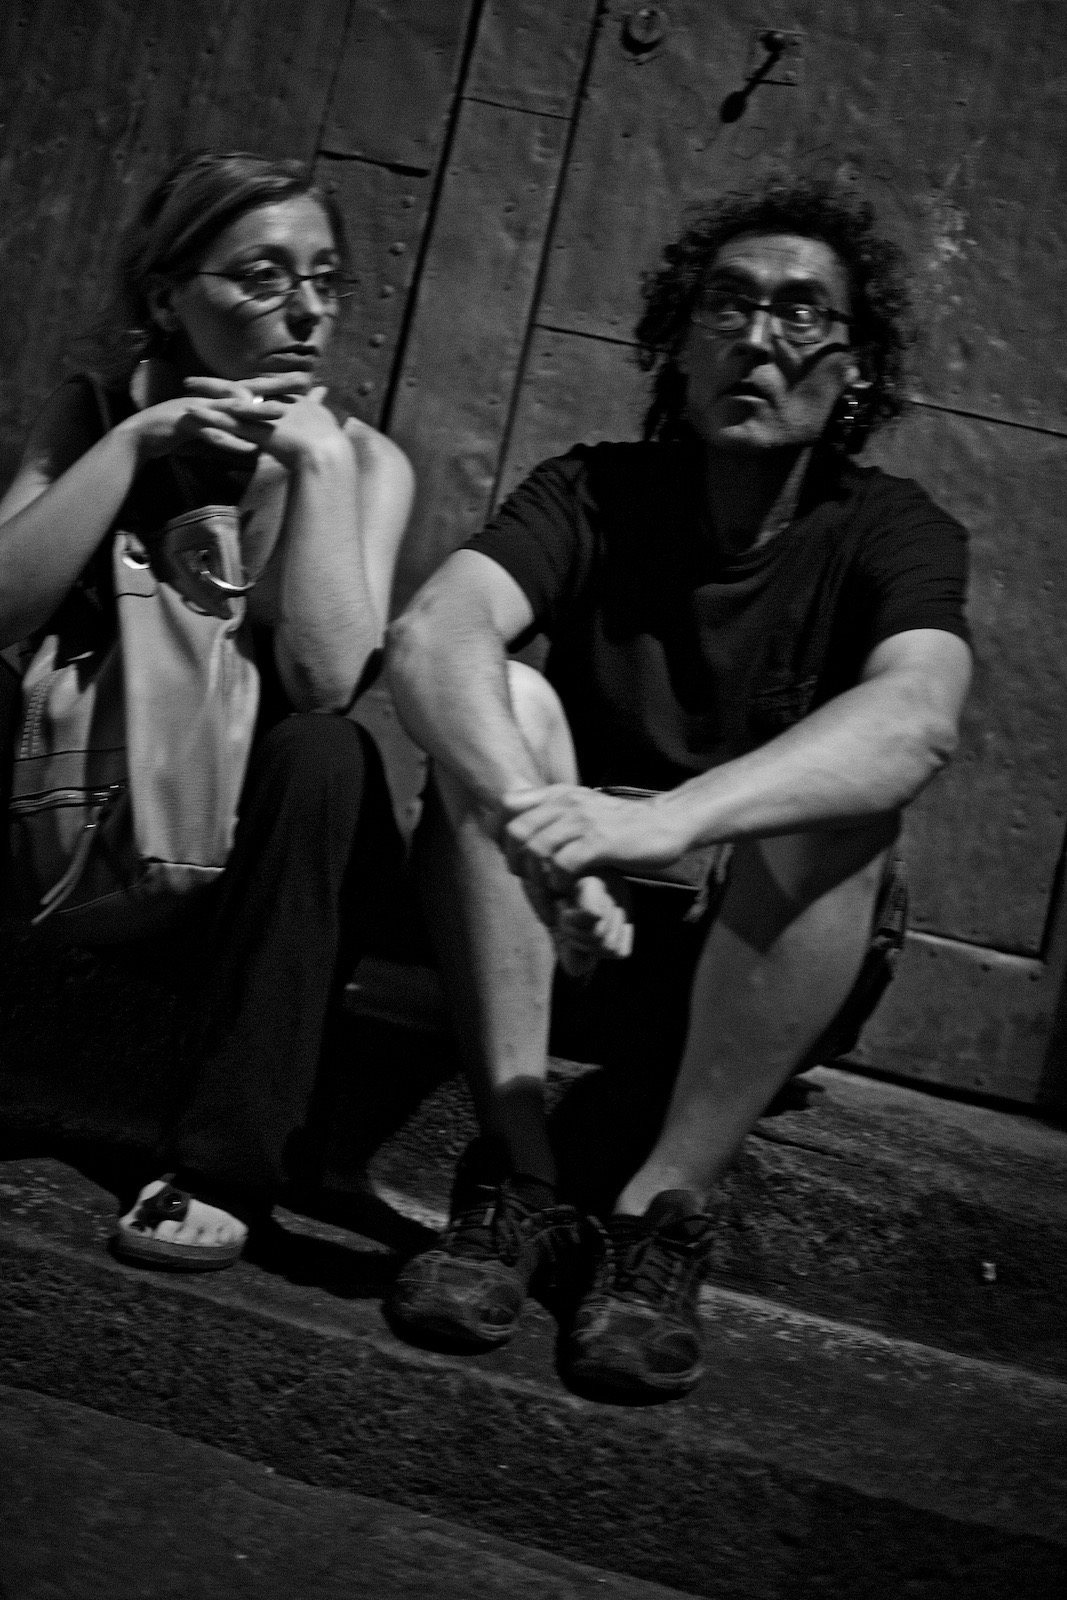 faces-of-napoli-denis-bosnic-photography-naples-bw-spaccanapoli-summer-108.jpg